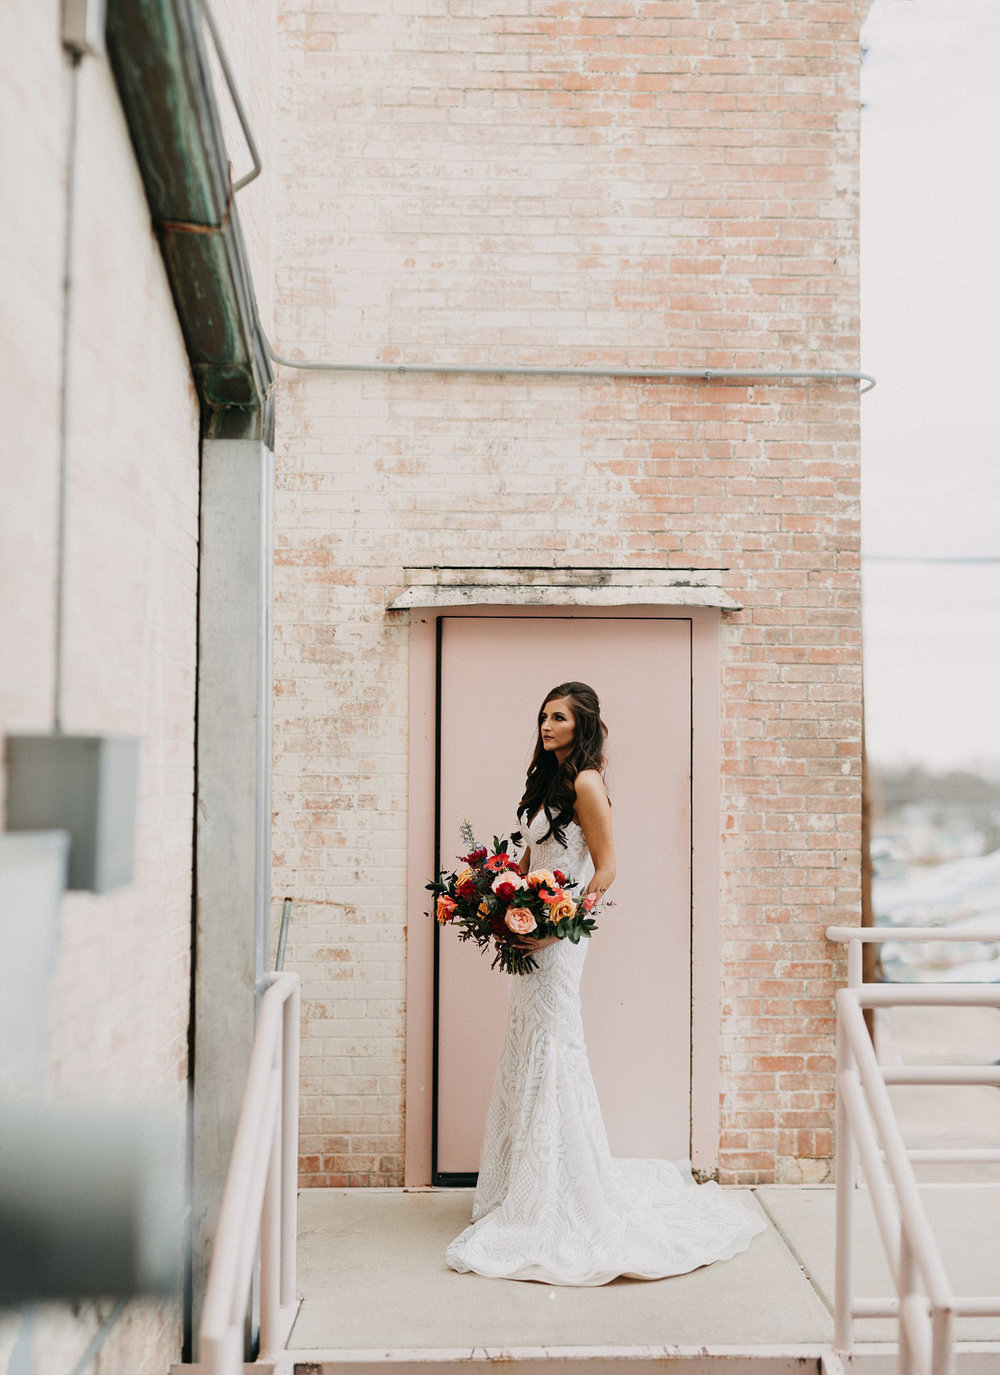 Bridals in front of a pink brick wall